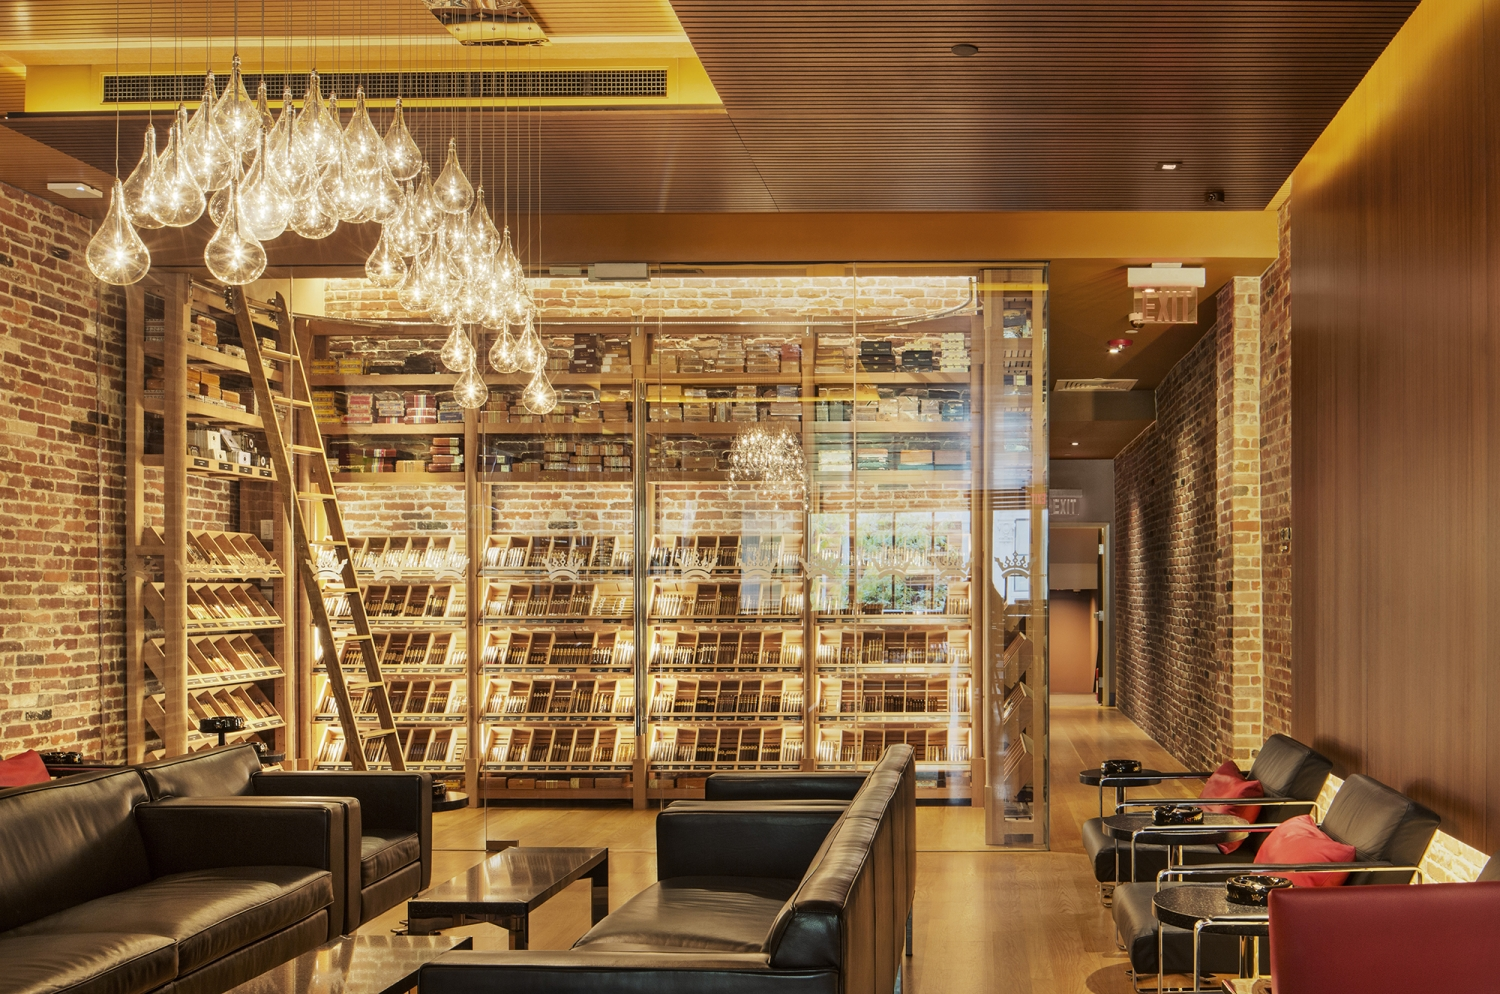 Ashton Cigar Bar Bentel amp ArchitectsPlanners AIA